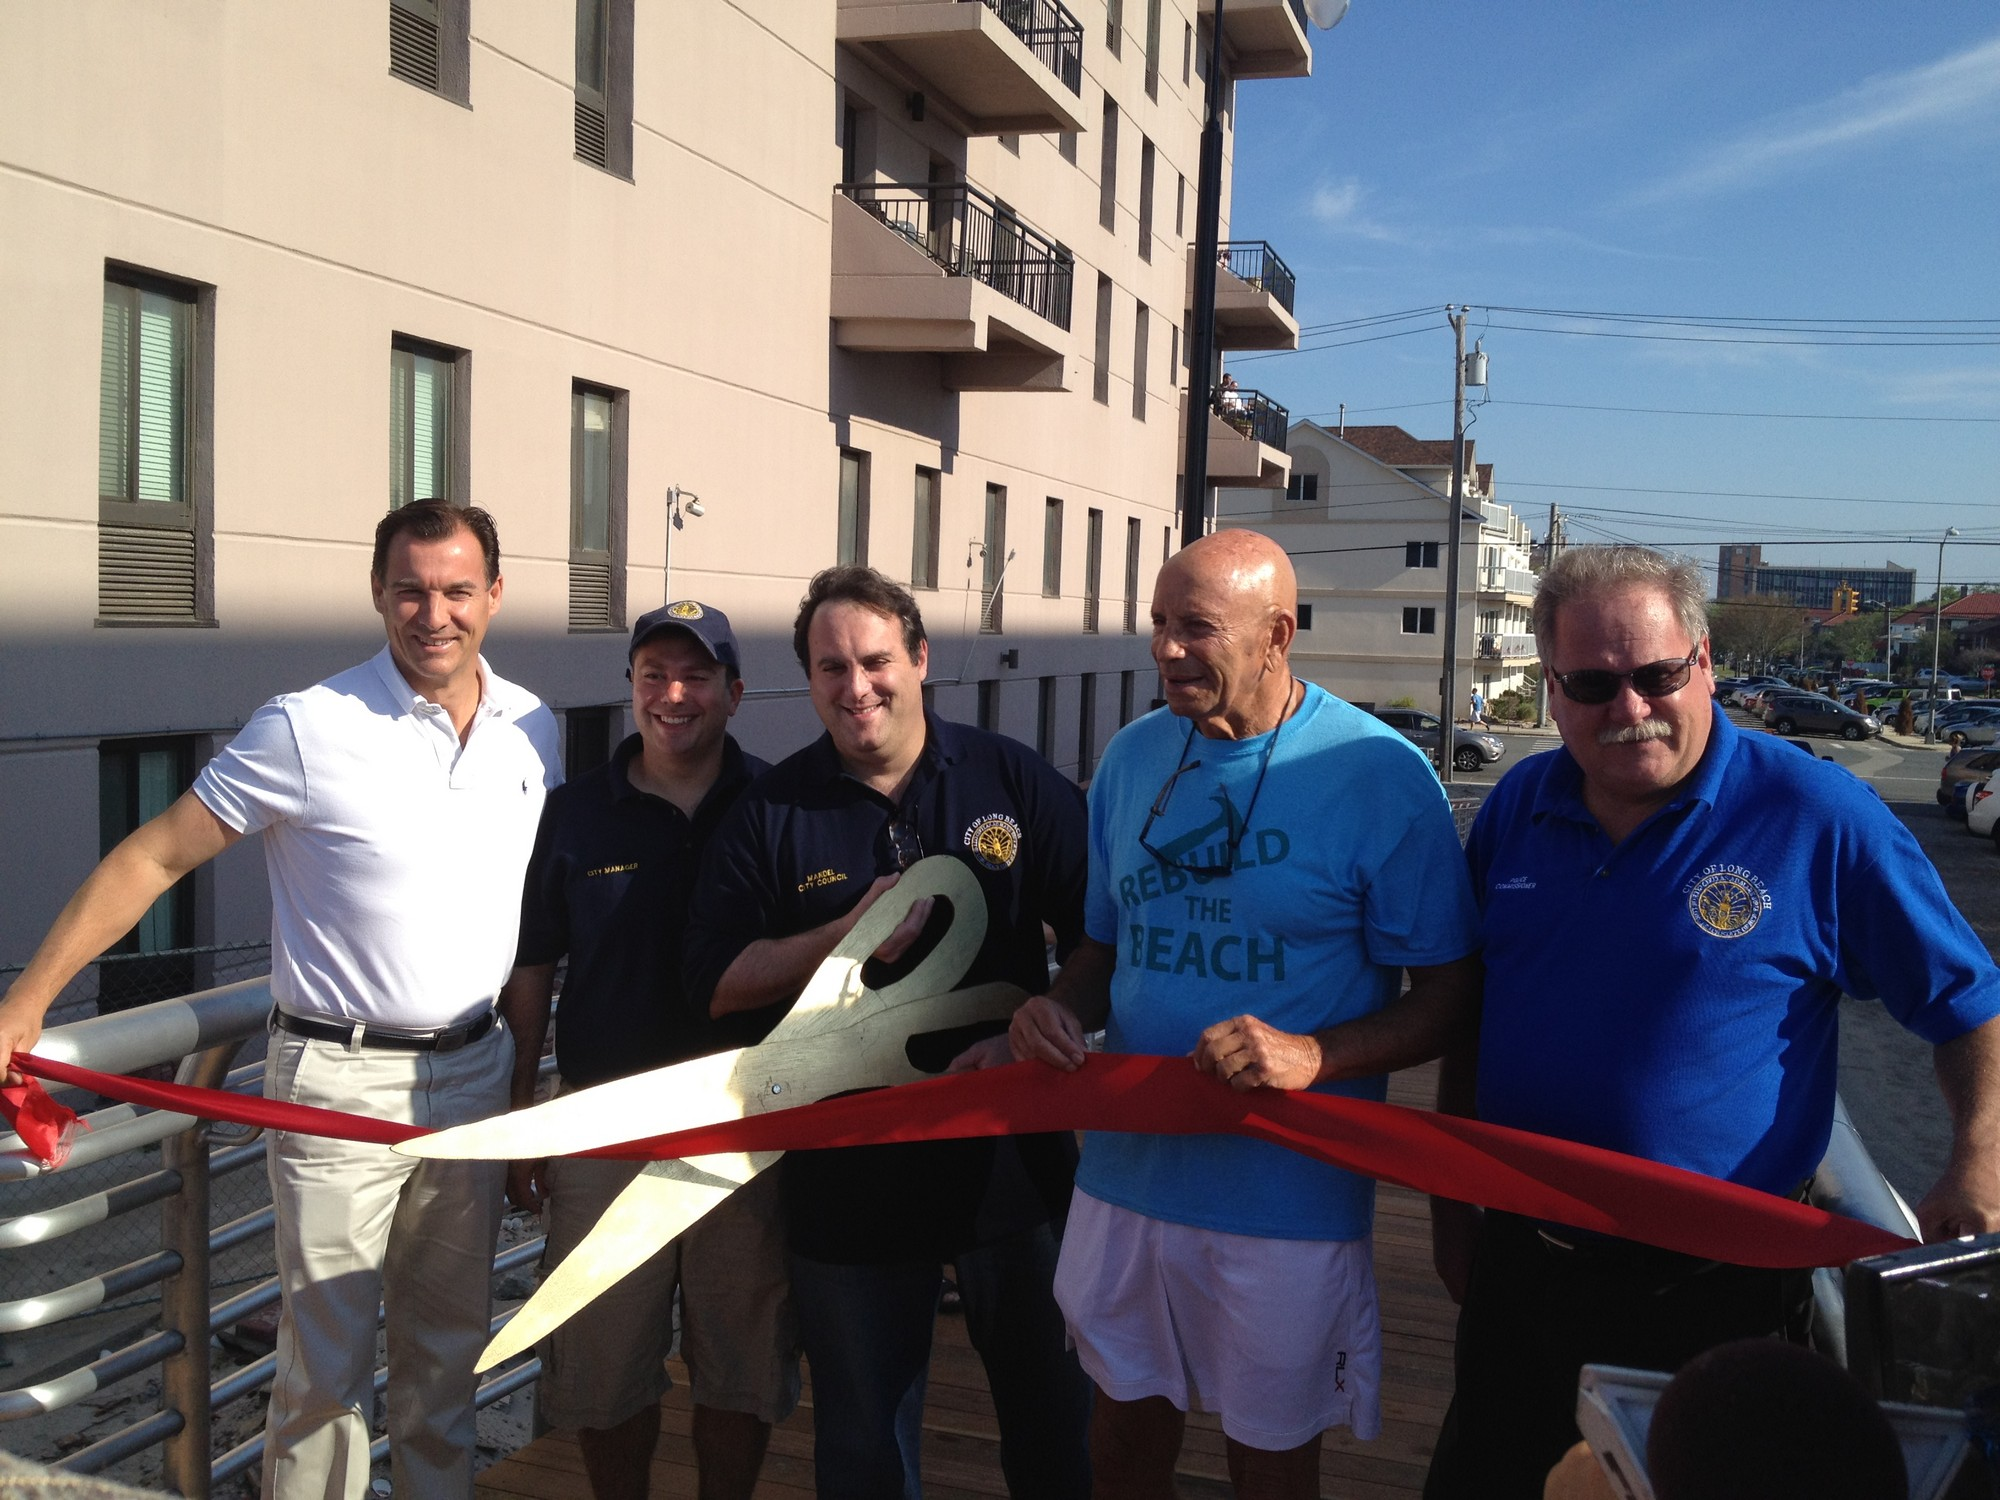 Former Nassau County Executive Tom Suozzi, far left, City Manager Jack Schnirman, Council President Scott Mandel, Assemblyman Harvey Weisenberg and Police Commissioner Mike Tangney at Saturday's ribbon-cutting ceremony.